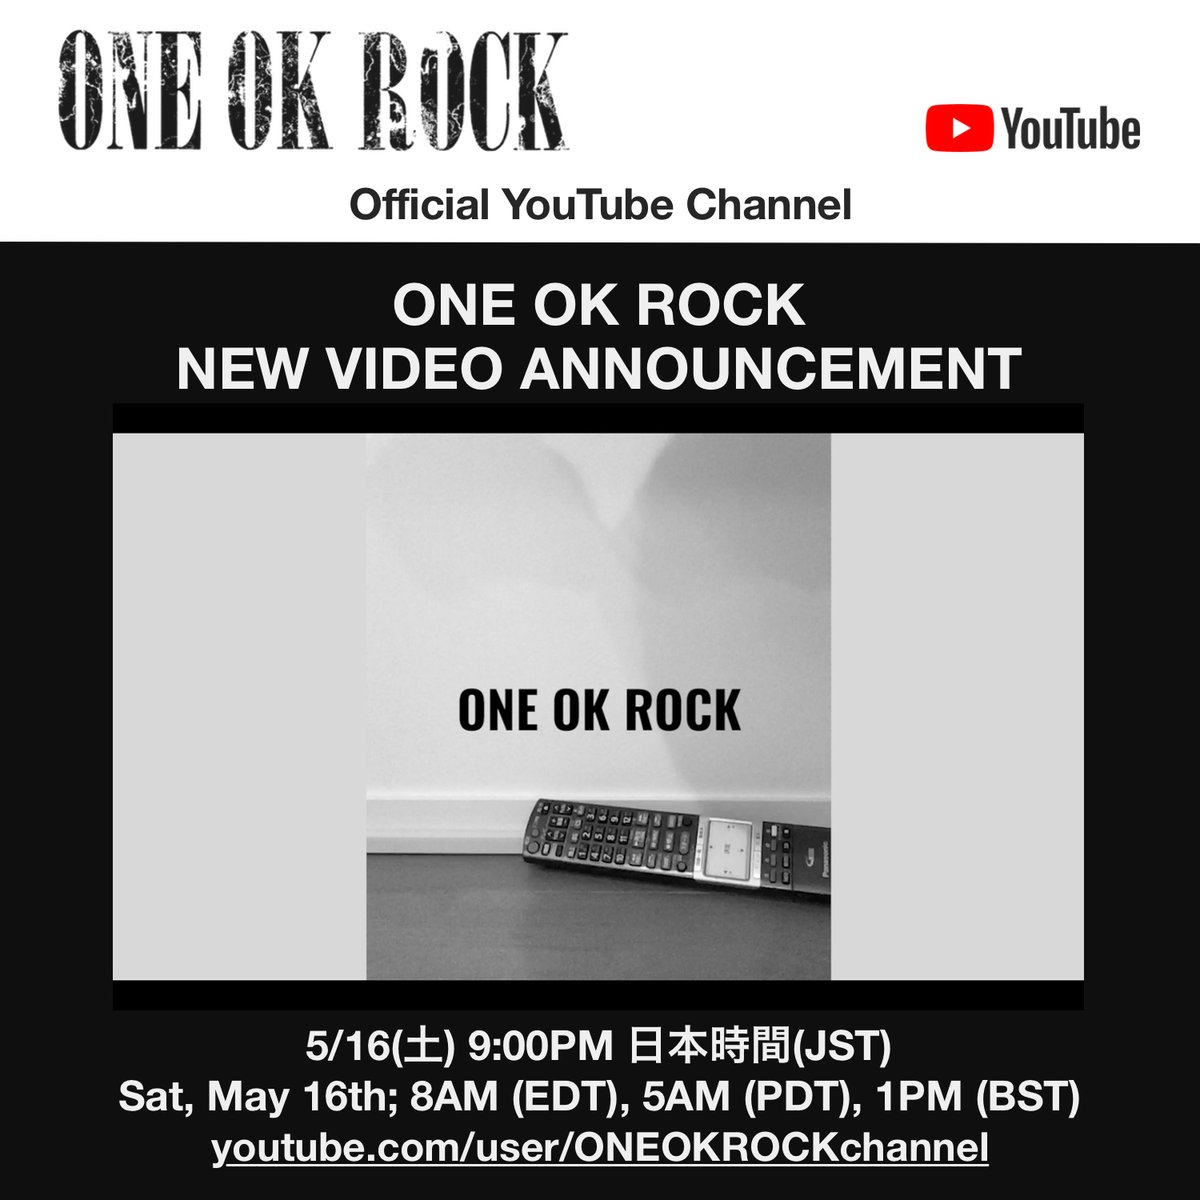 #stayhome #staysafe #strongertogether #ONEOKROCK New Upload - May 16th, 9:00PM (JST) youtube.com/user/ONEOKROCK…